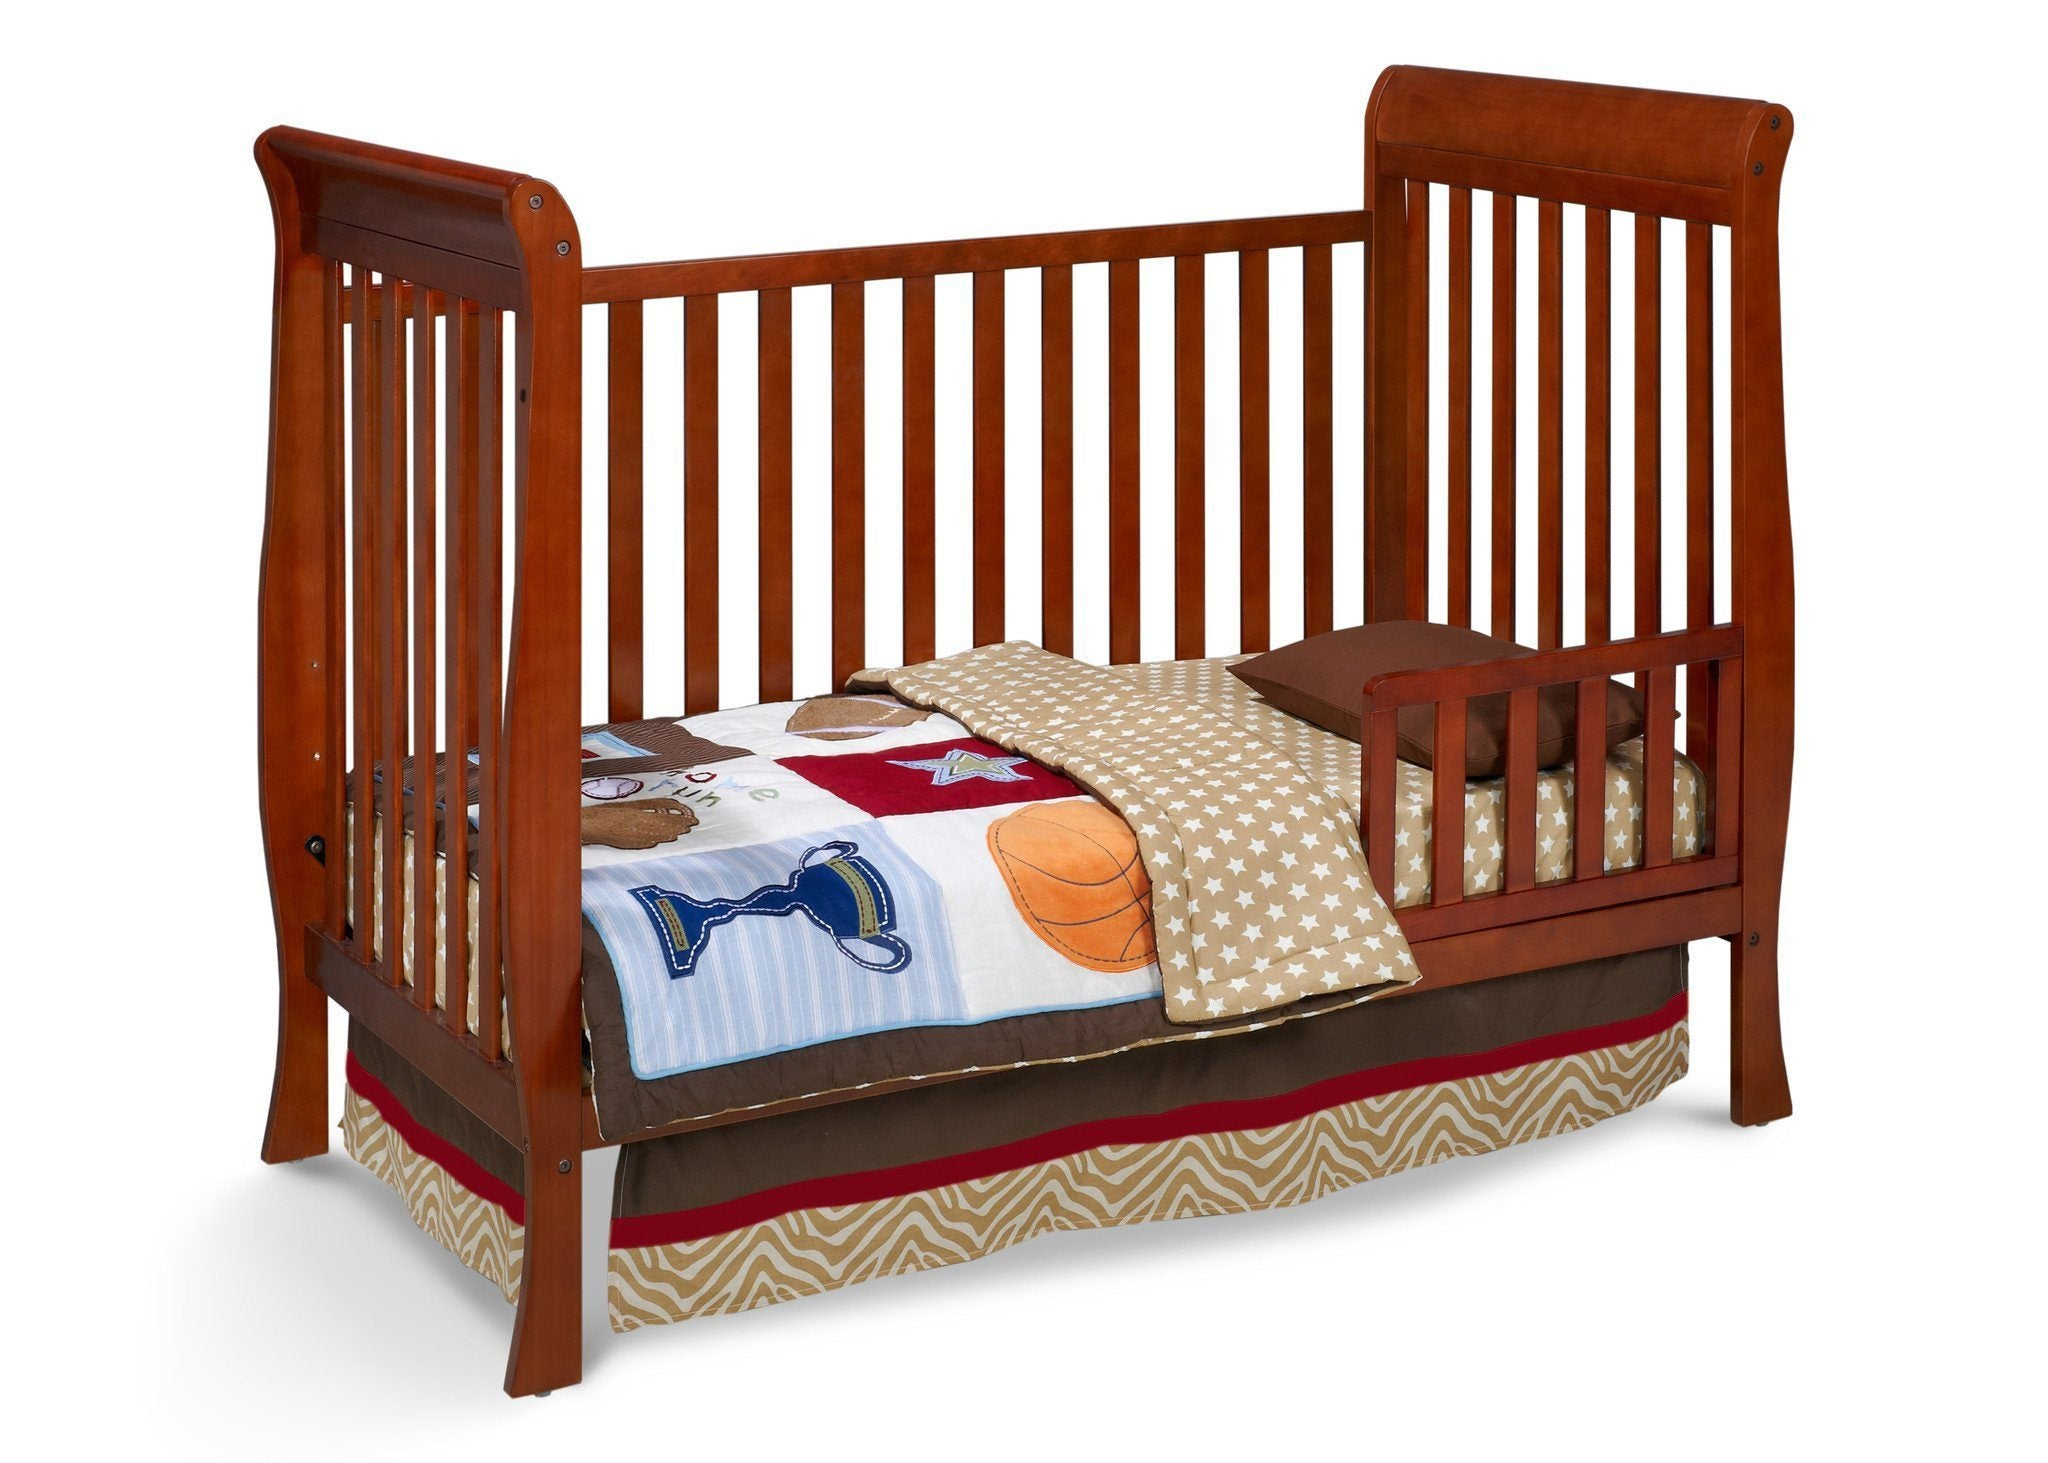 Delta Children Spiced Cinnamon (209) Winter Park 3-in-1 Crib, Toddler Bed Conversion b2b